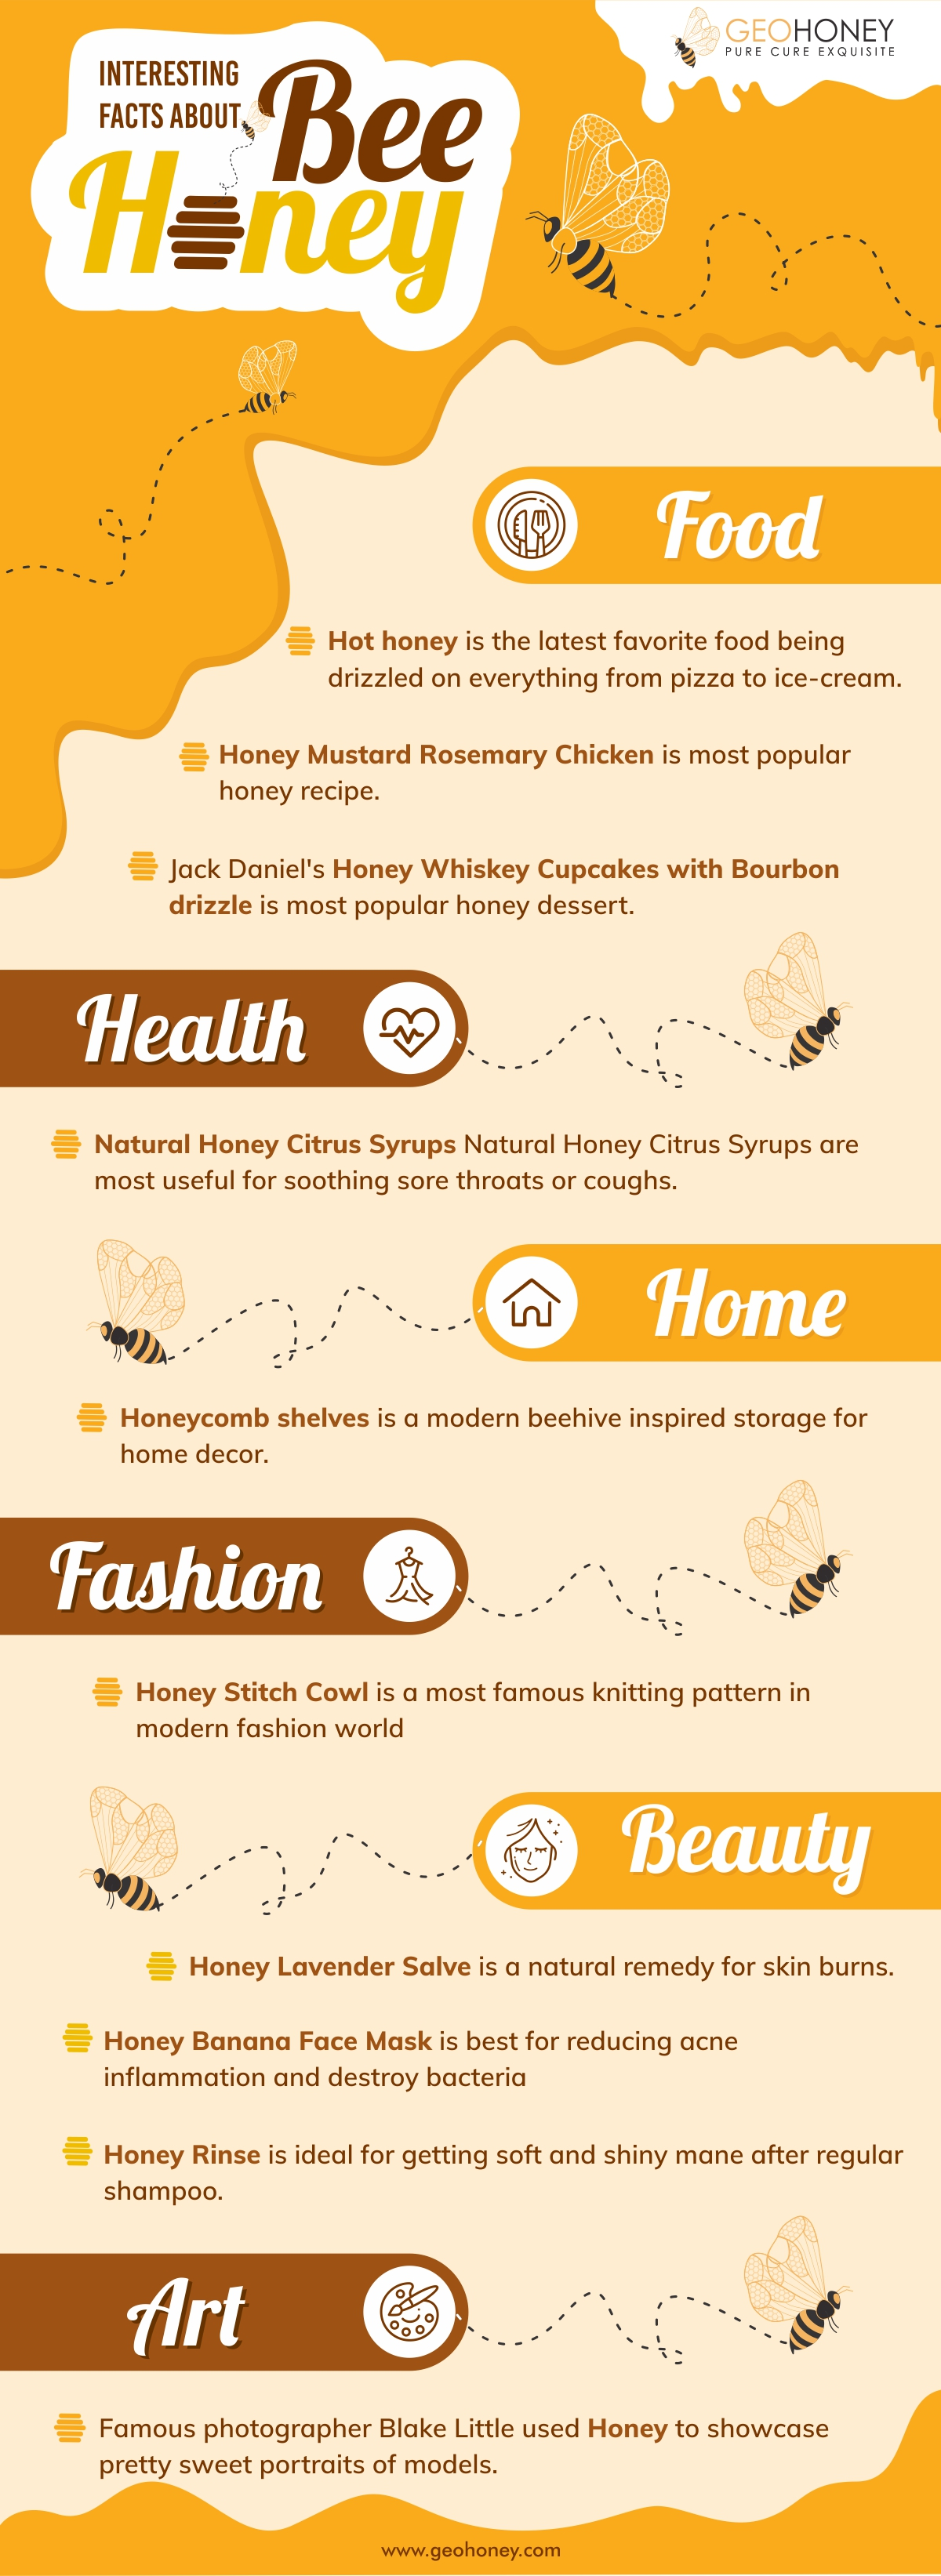 Interesting Facts - bee honey